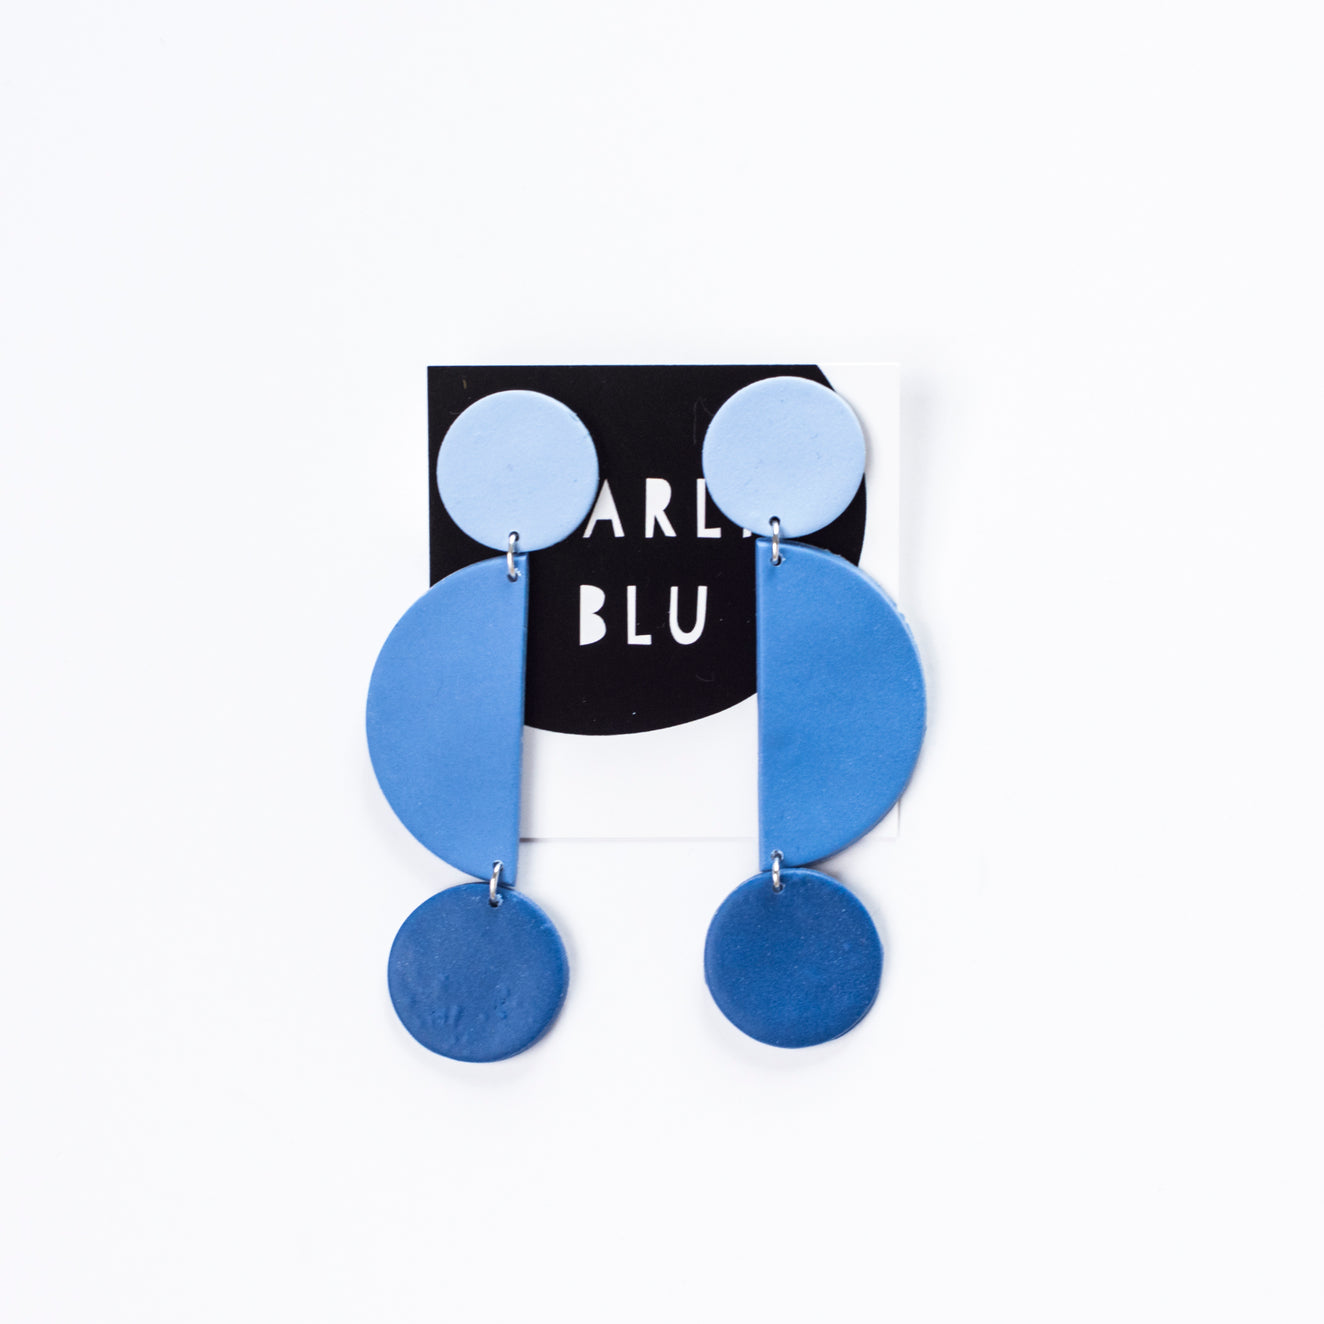 Charlie Blu Shelby Earrings